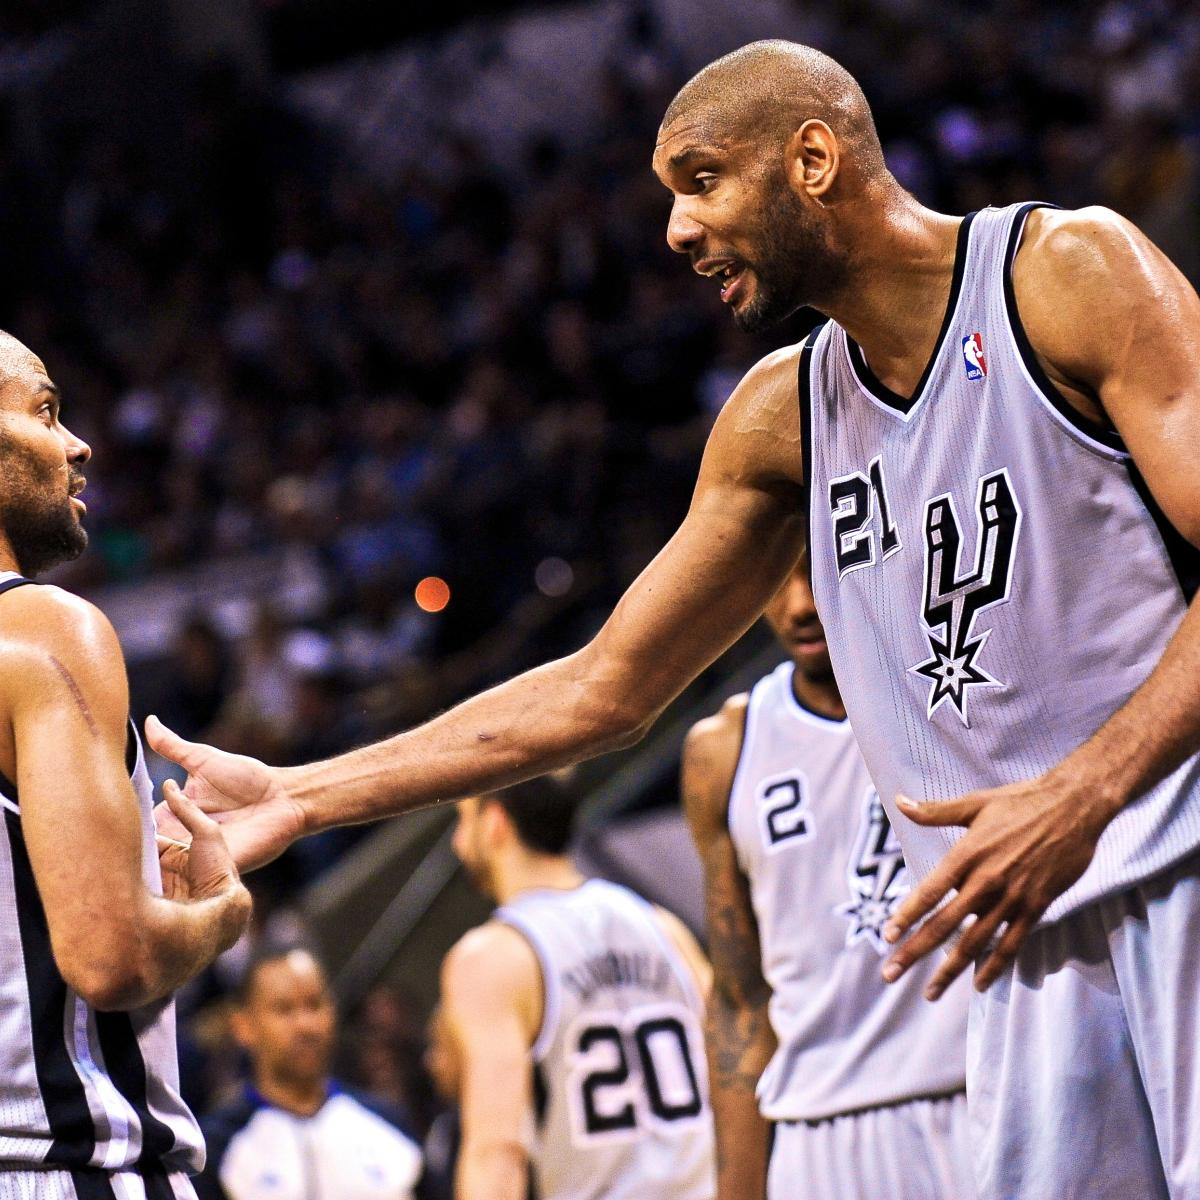 San Antonio Spurs Basketball News, Schedule, Roster, Stats